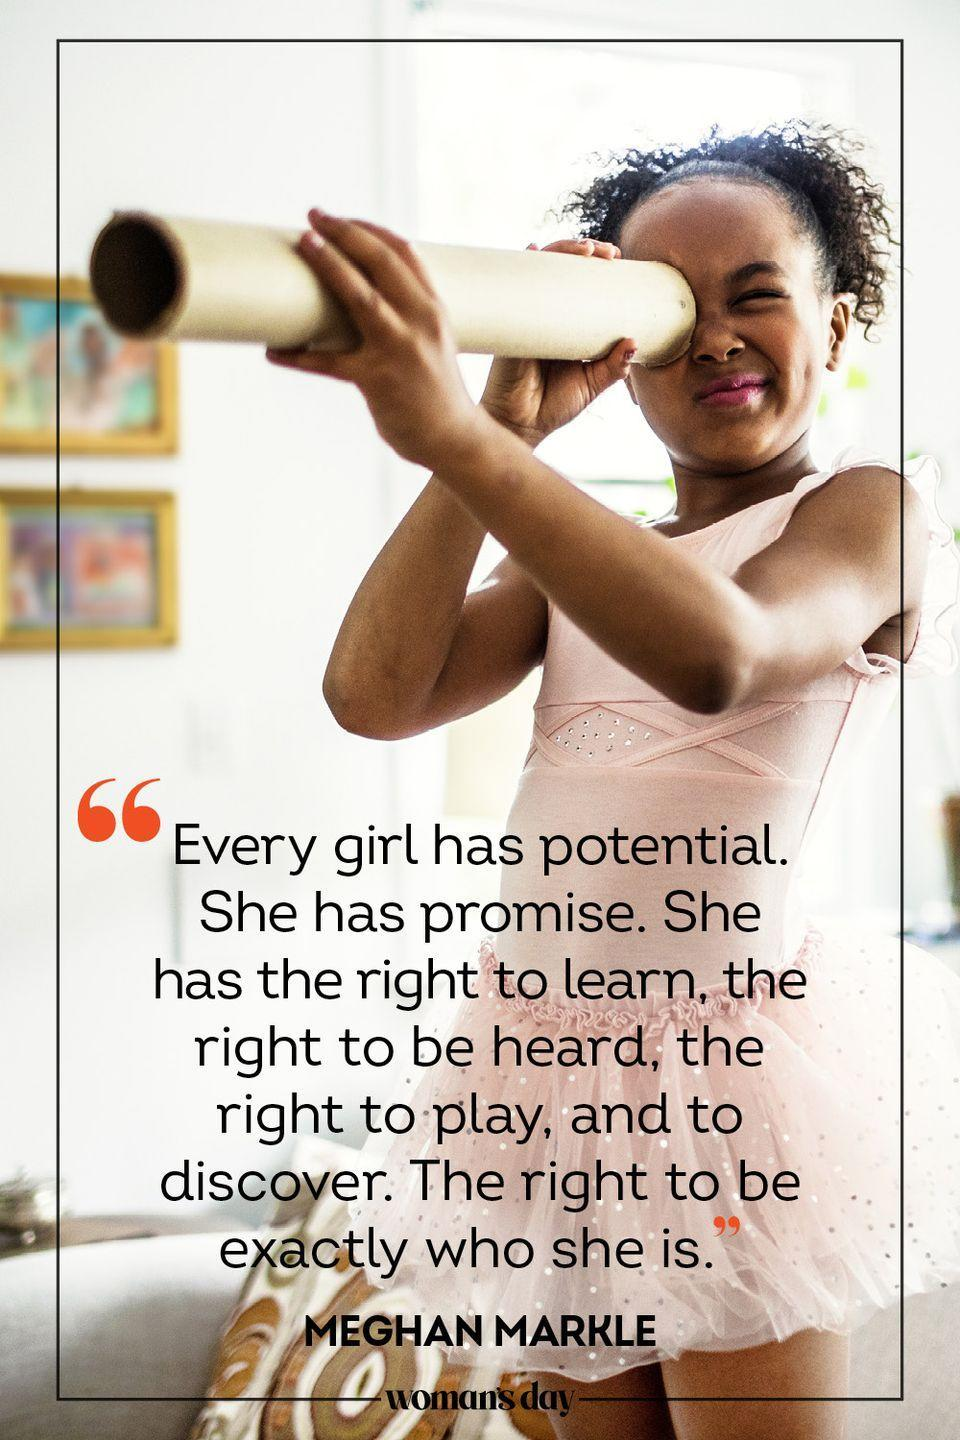 """<p>""""Every girl has potential. She has promise. She has the right to learn, the right to be heard, the right to play, and to discover. The right to be exactly who she is."""" — Meghan Markle</p>"""